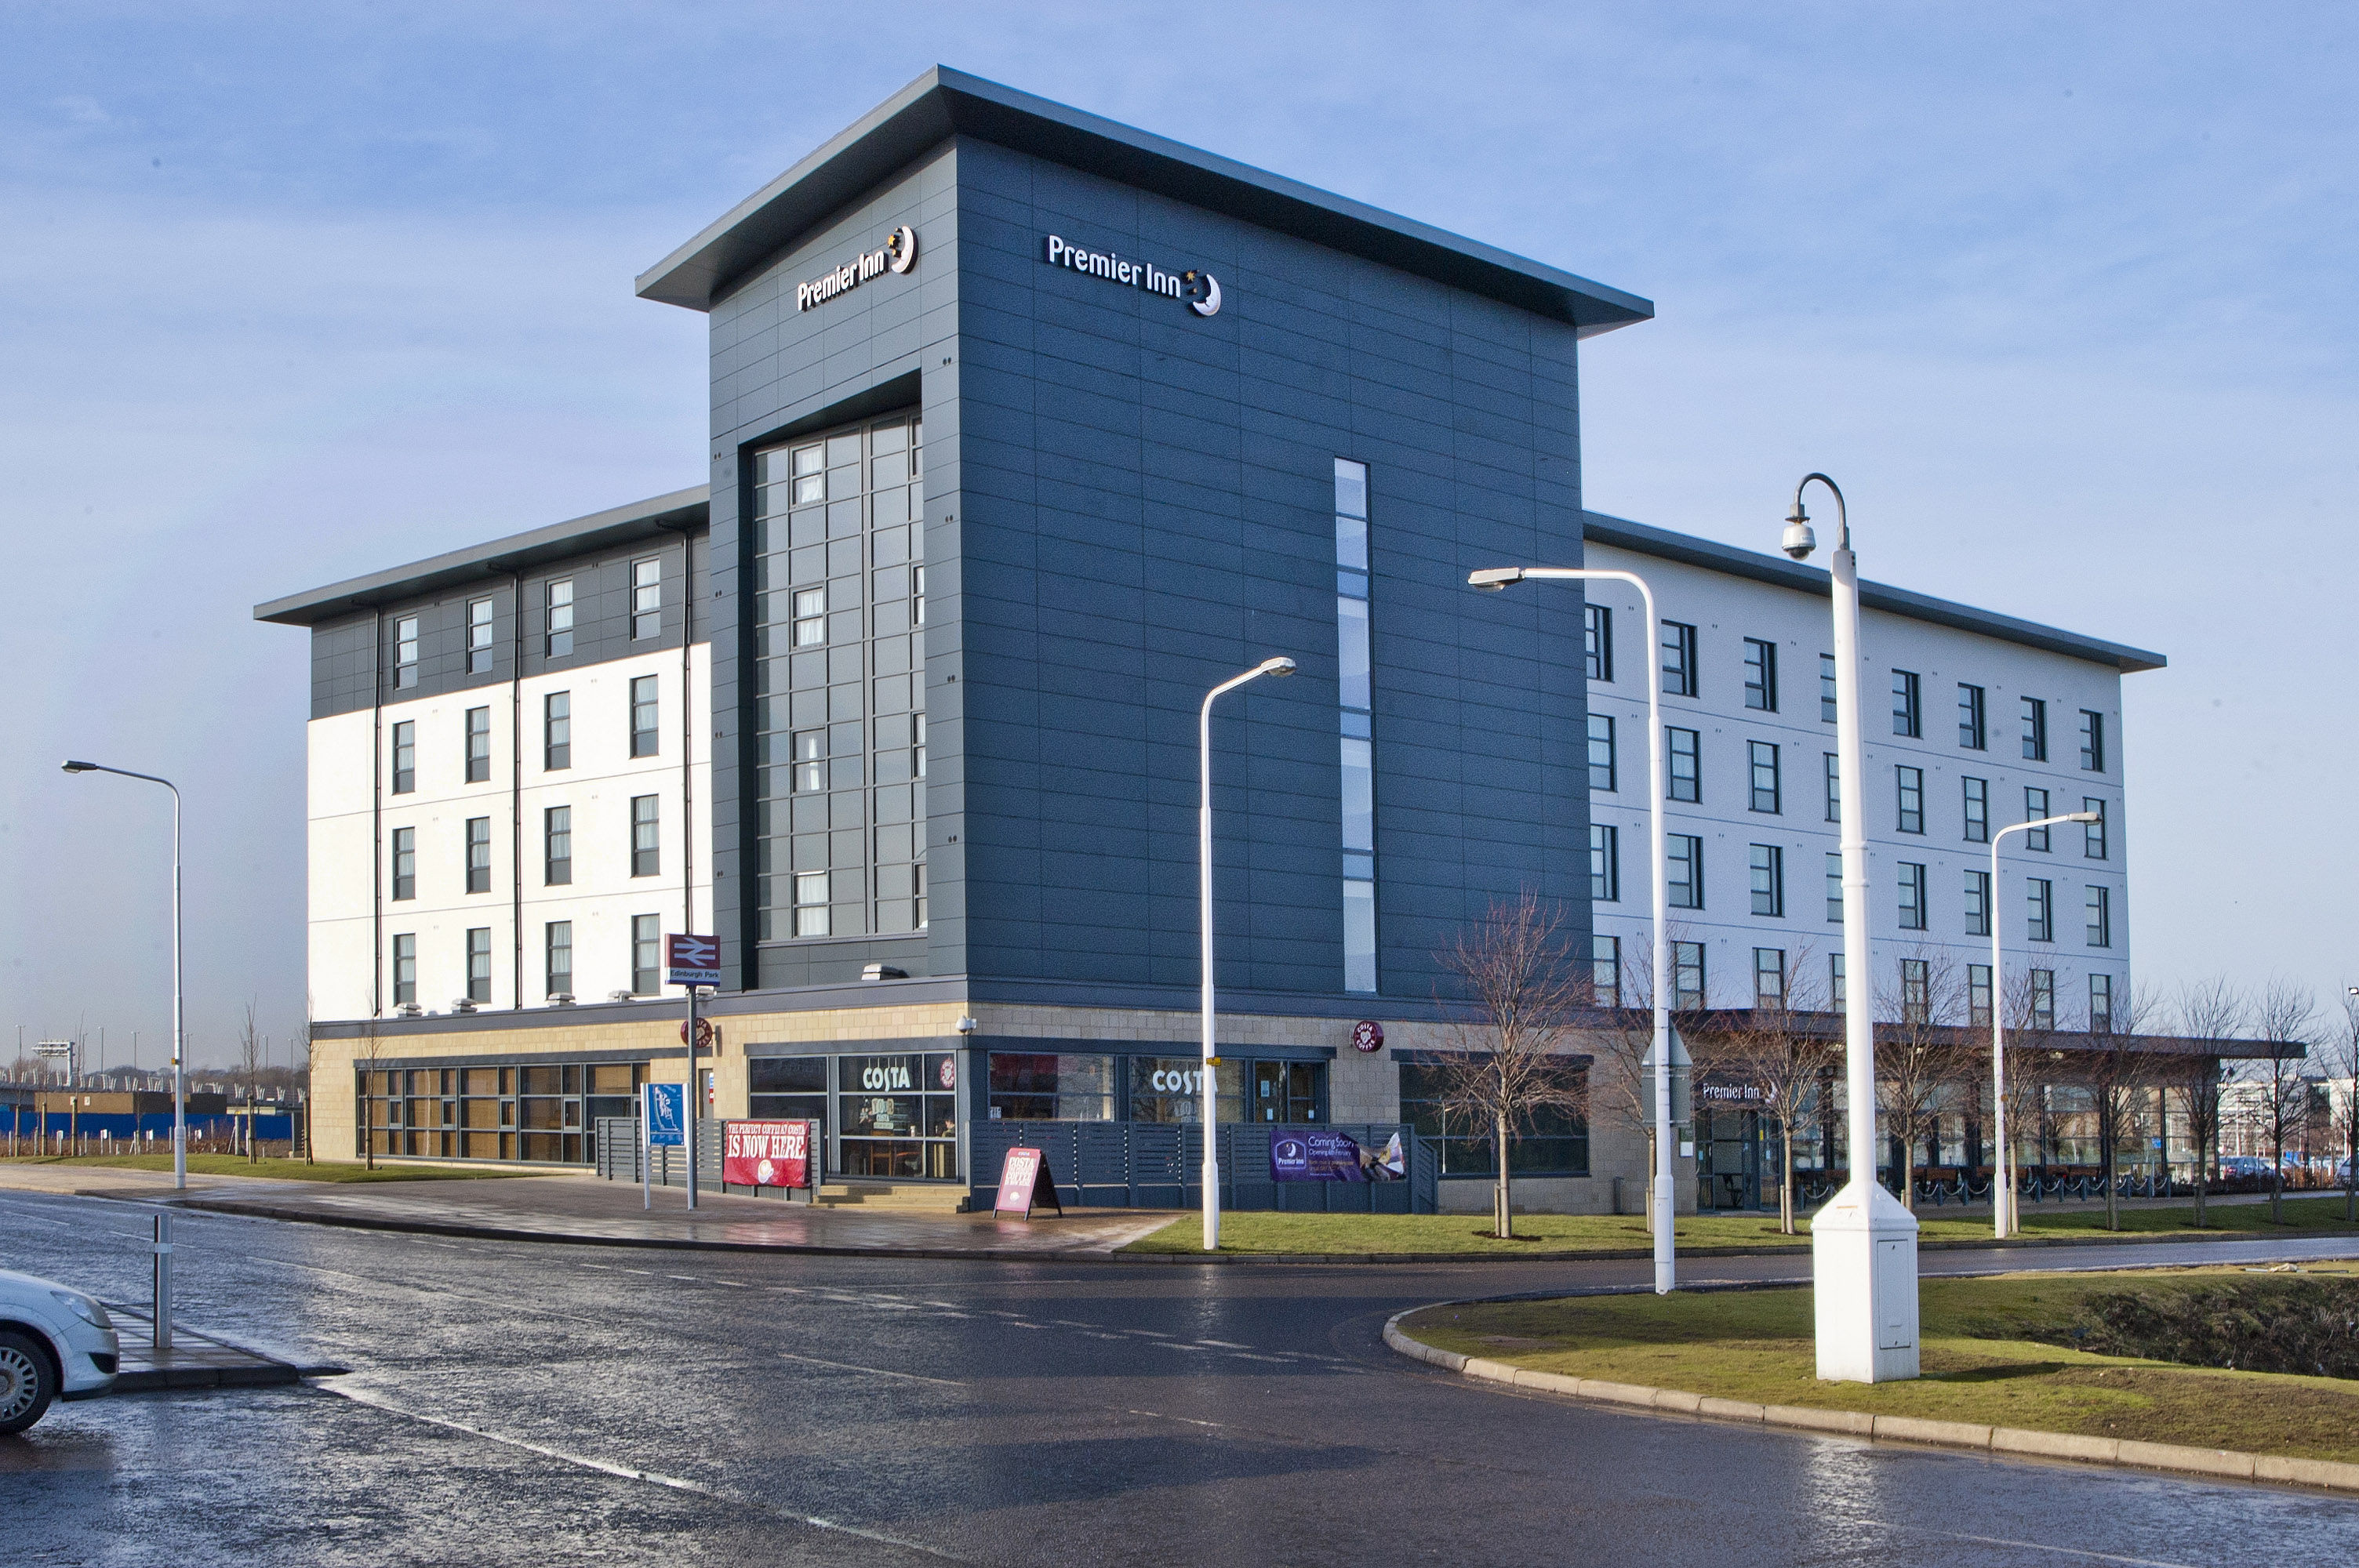 The Gyle Premier Inn at Edinburgh Park (Premier Inn/PA Wire)